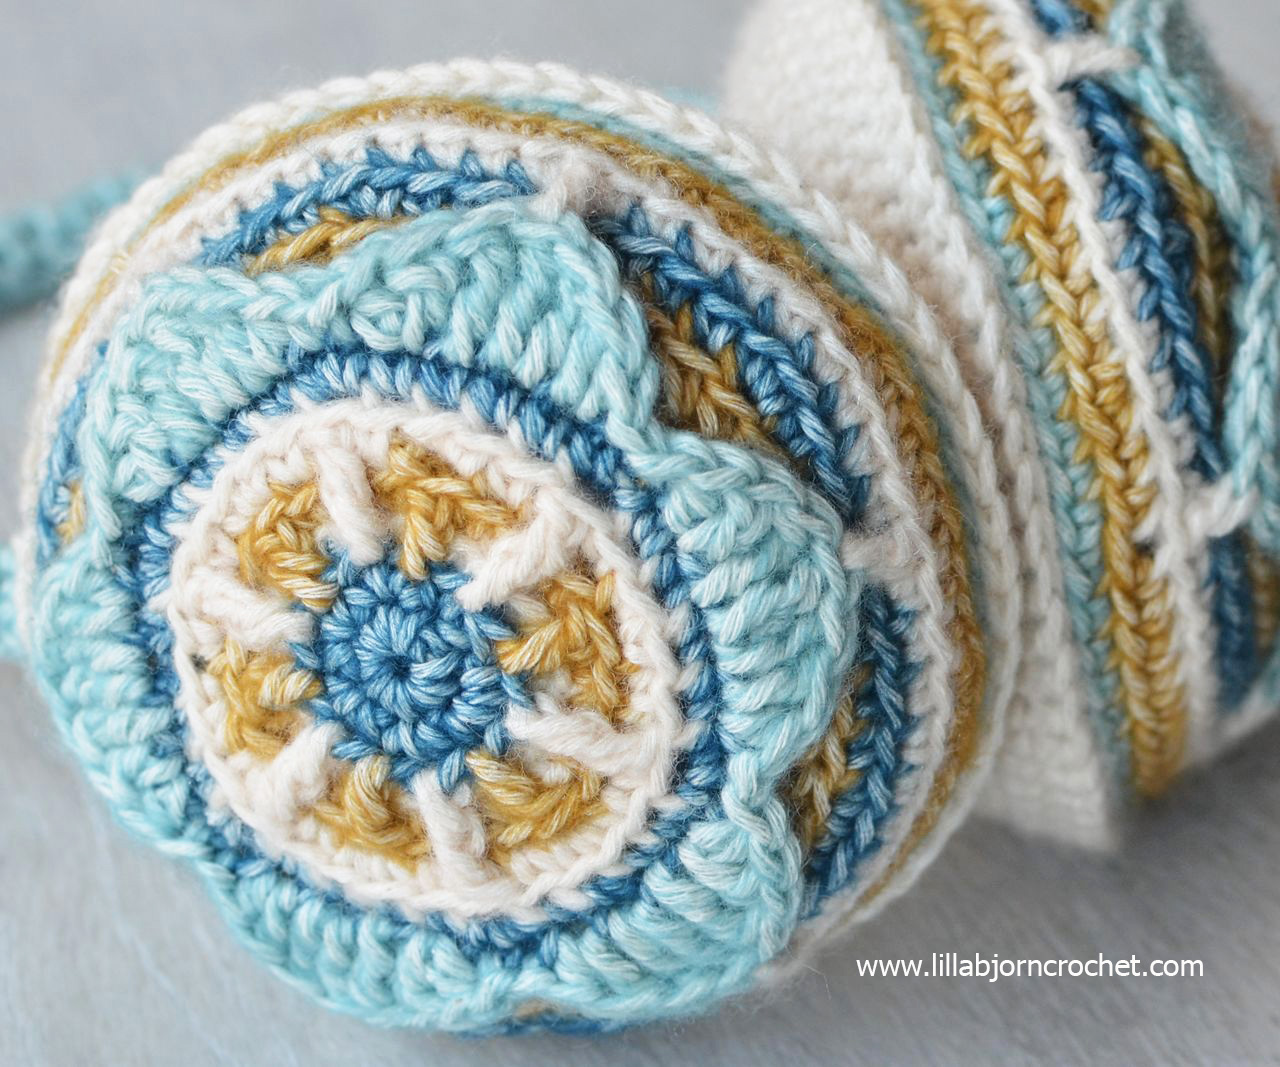 Free Crochet Earmuff Pattern : Brighten Your Outfit with Crocheted Ear Muffs ...